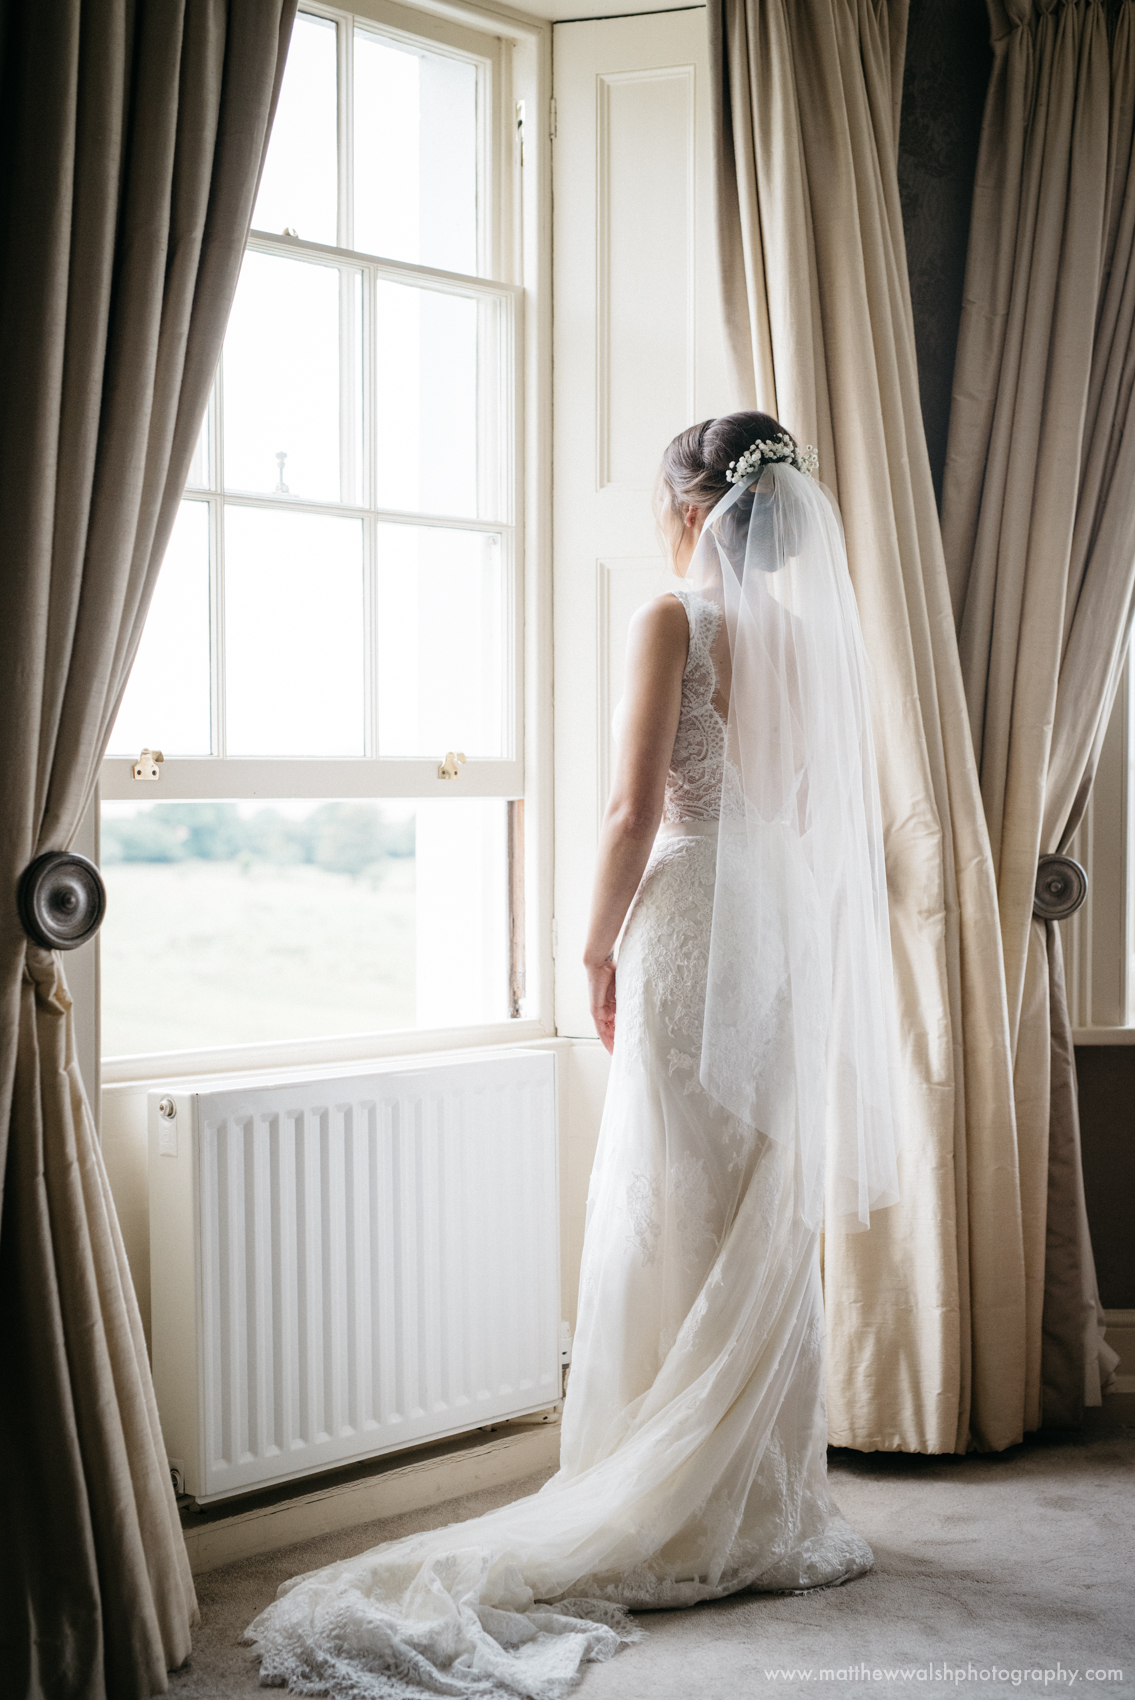 The bride looking radiant as she looks out of the window wearing her wedding dress